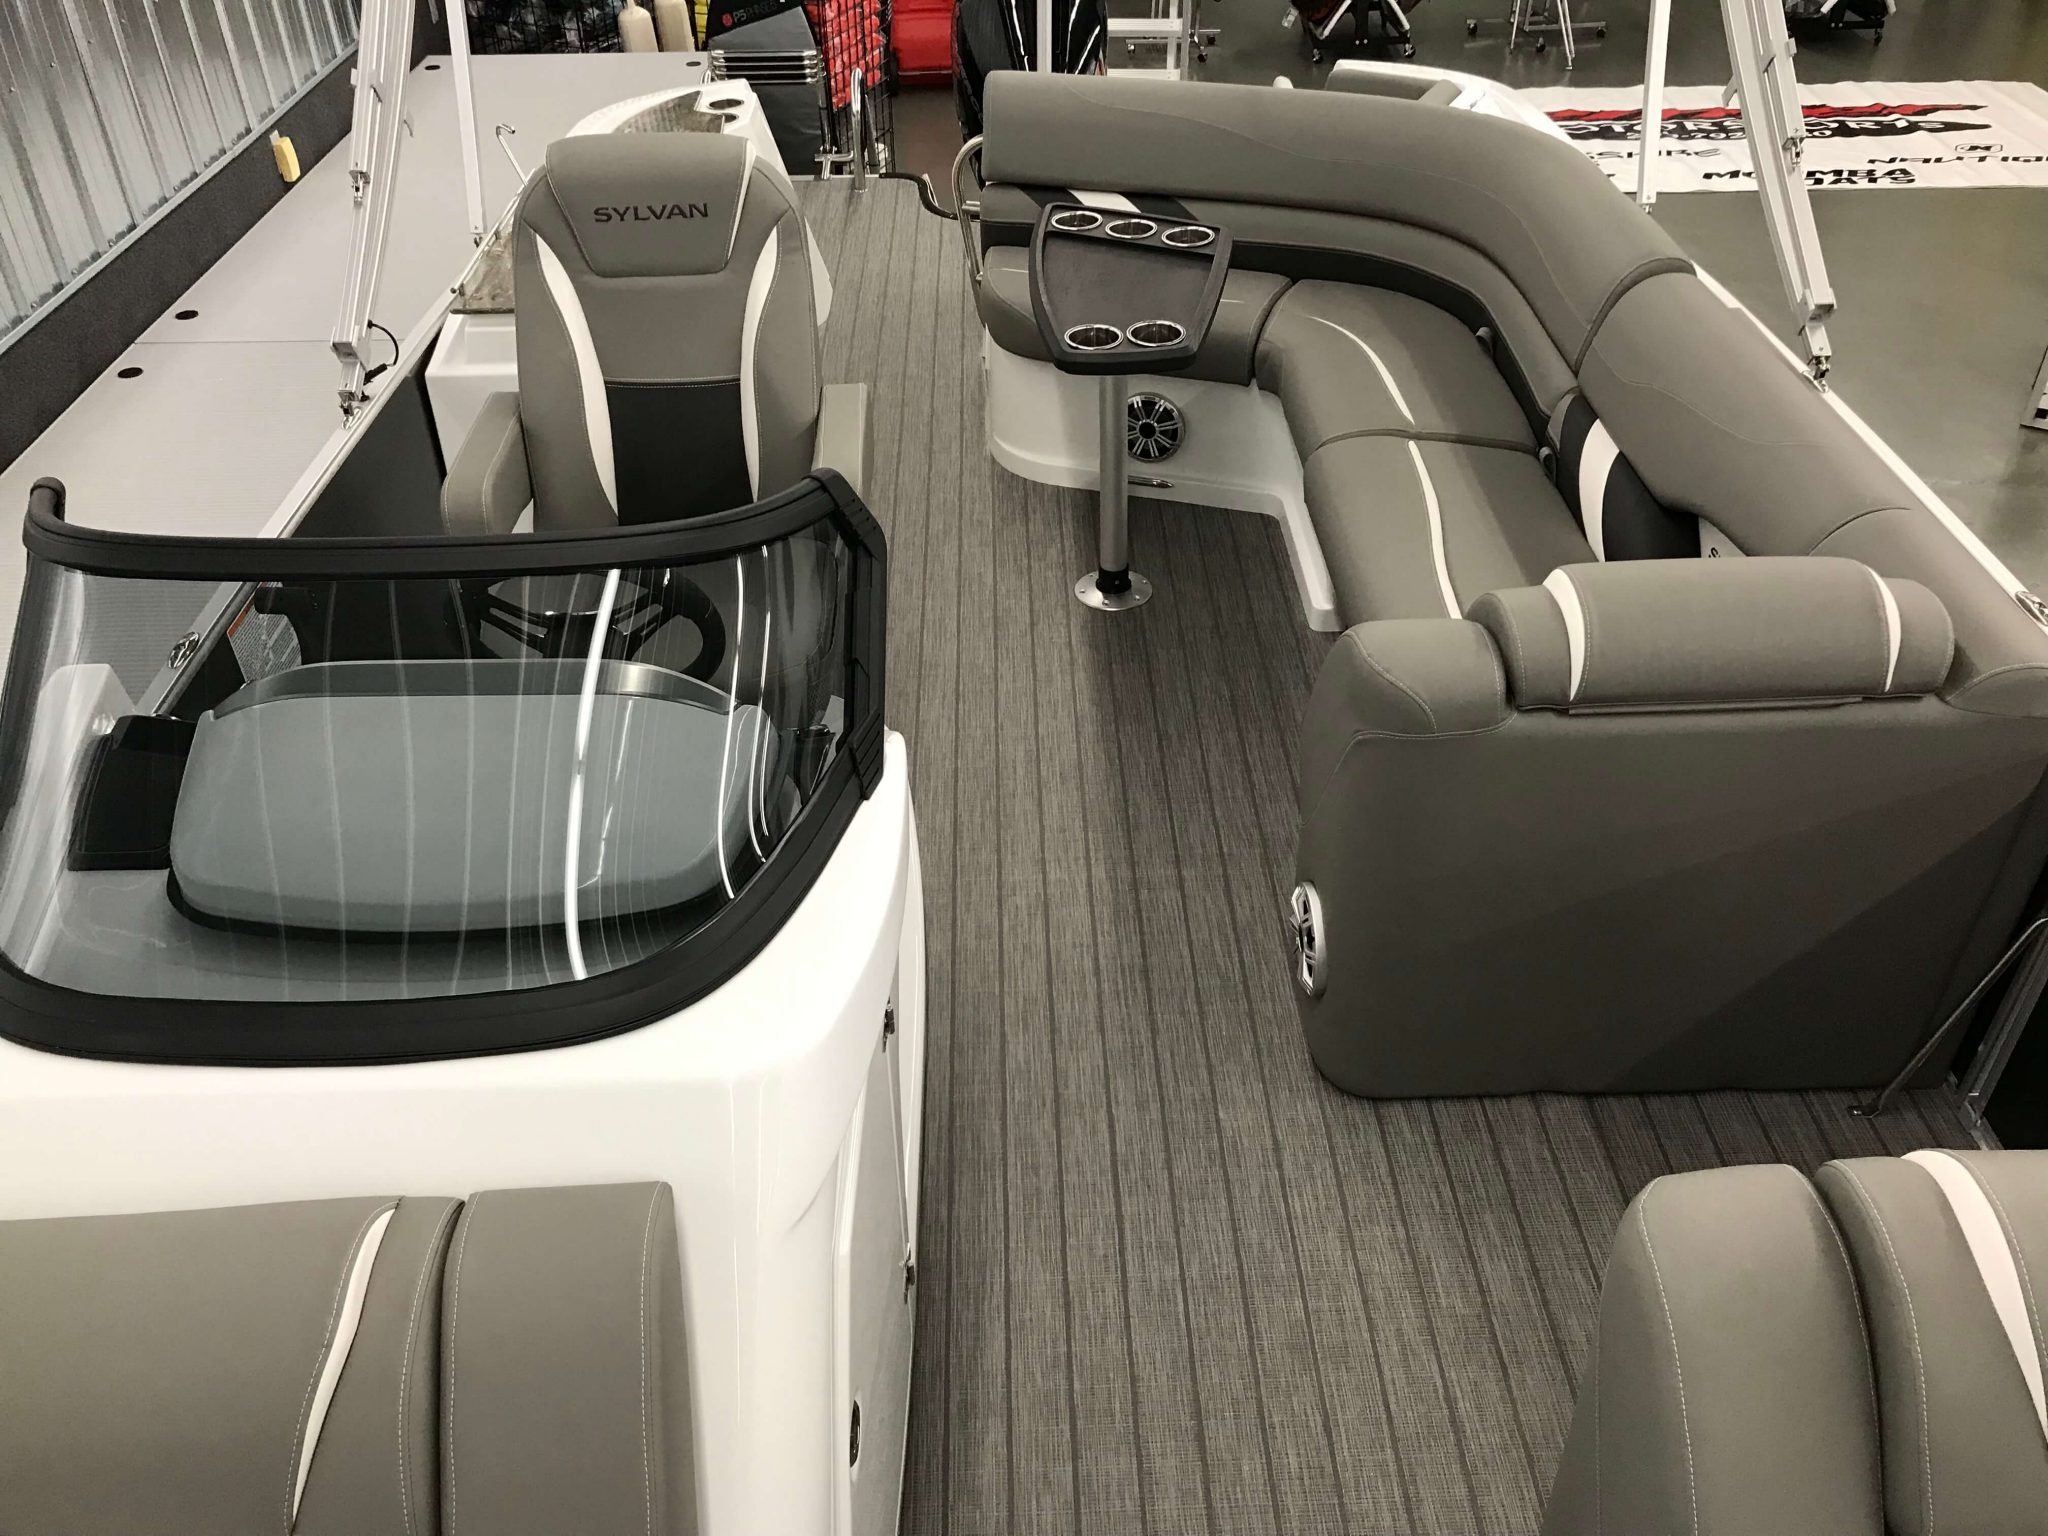 2019 Sylvan S3 Cruise Tritoon Interior Cockpit Layout 2